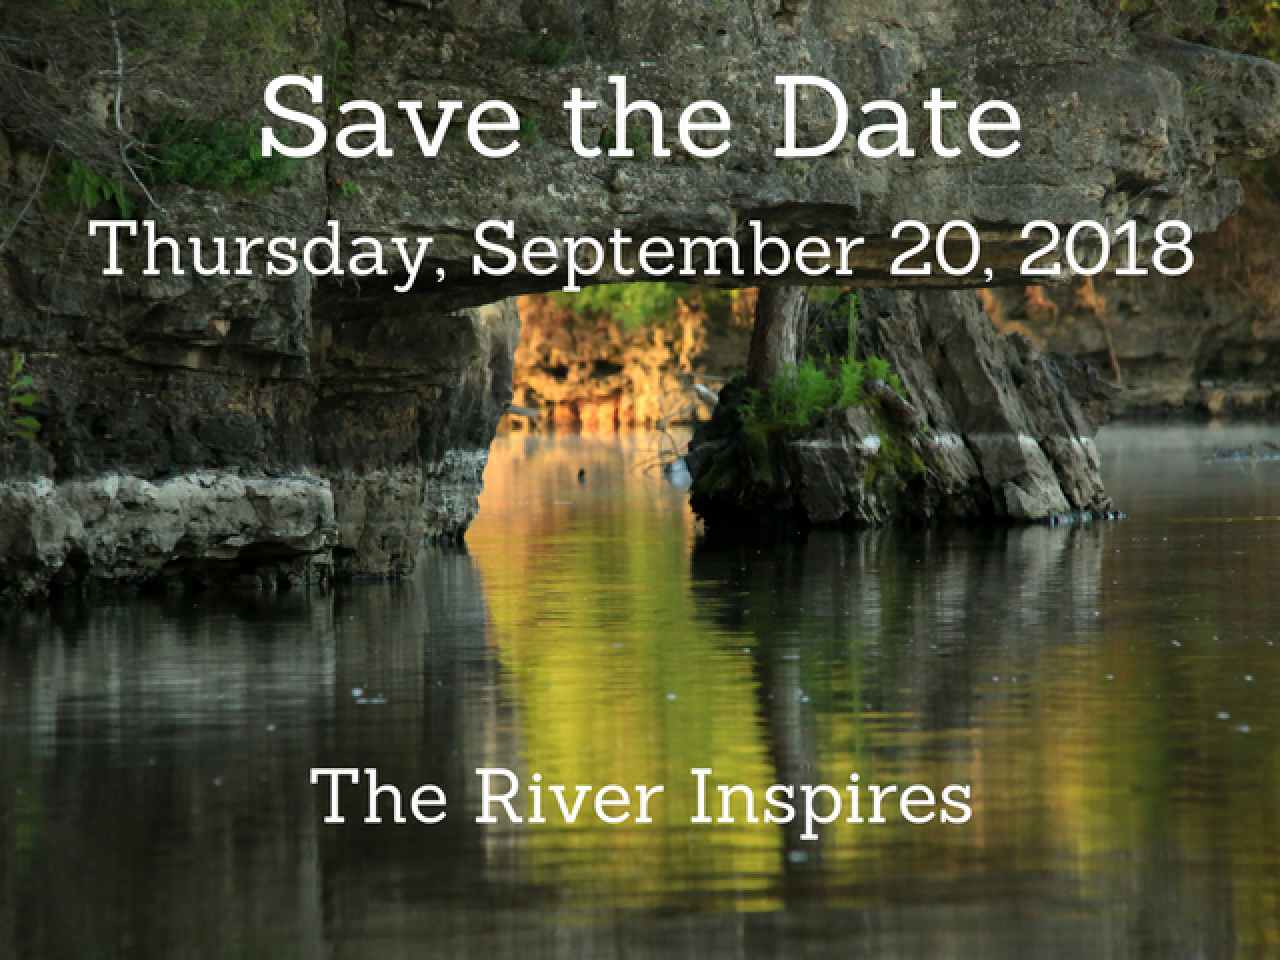 Save the Date September 20, 2018. The River Inspires: An Evening Celebrating the Mississippi River